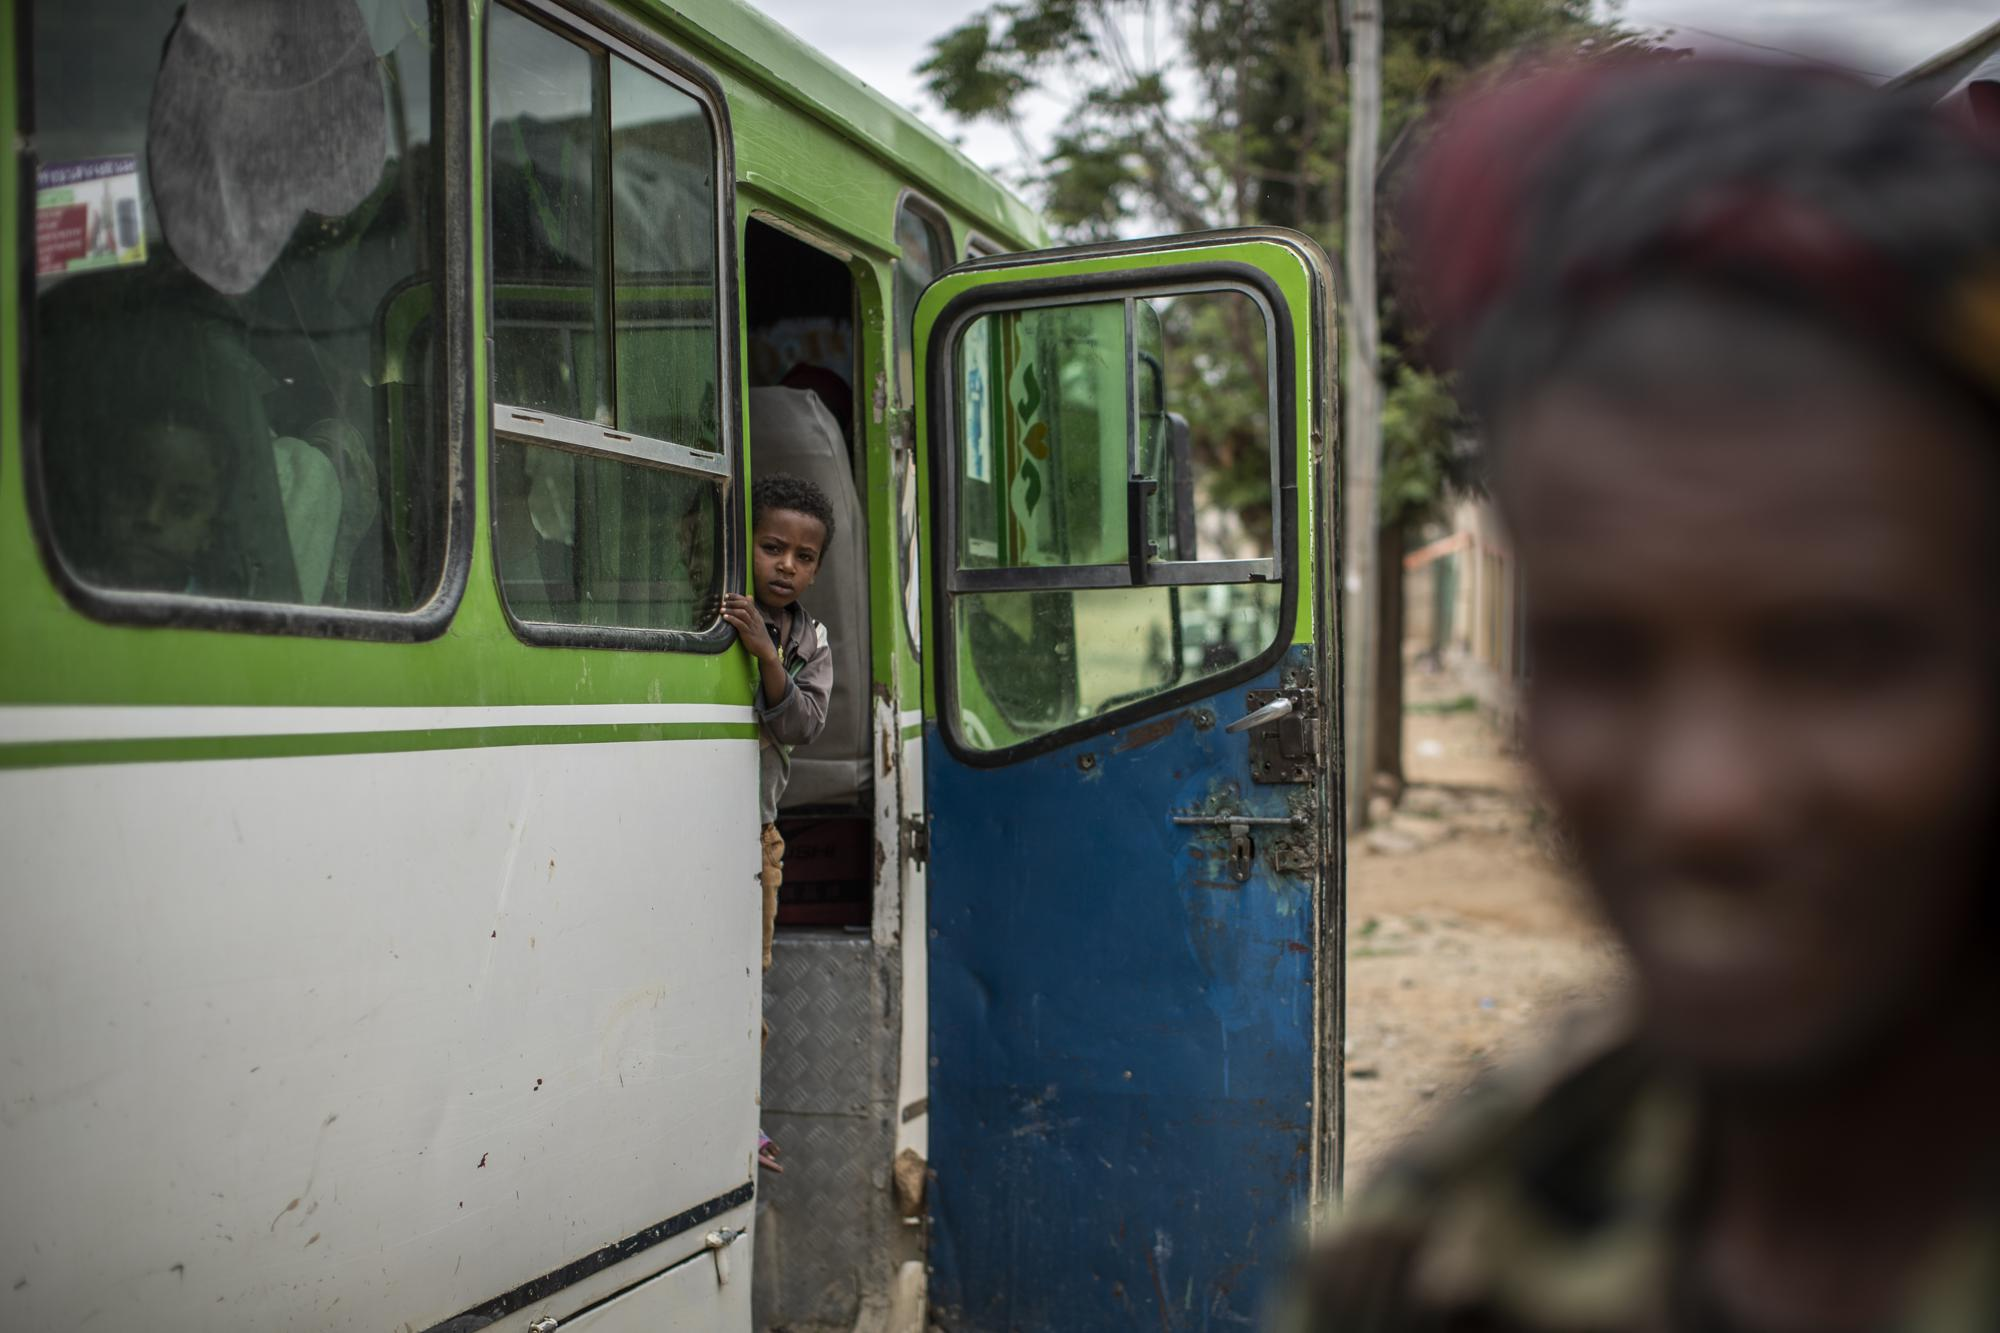 A boy about to depart on a bus looks towards a fighter loyal to the Tigray People's Liberation Front (TPLF), right, in the town of Hawzen, then-controlled by the group, in the Tigray region of northern Ethiopia, on Friday, May 7, 2021. Residents of Hawzen, a town of a few thousand people, said it had seen fighting four times since November. (AP Photo/Ben Curtis)